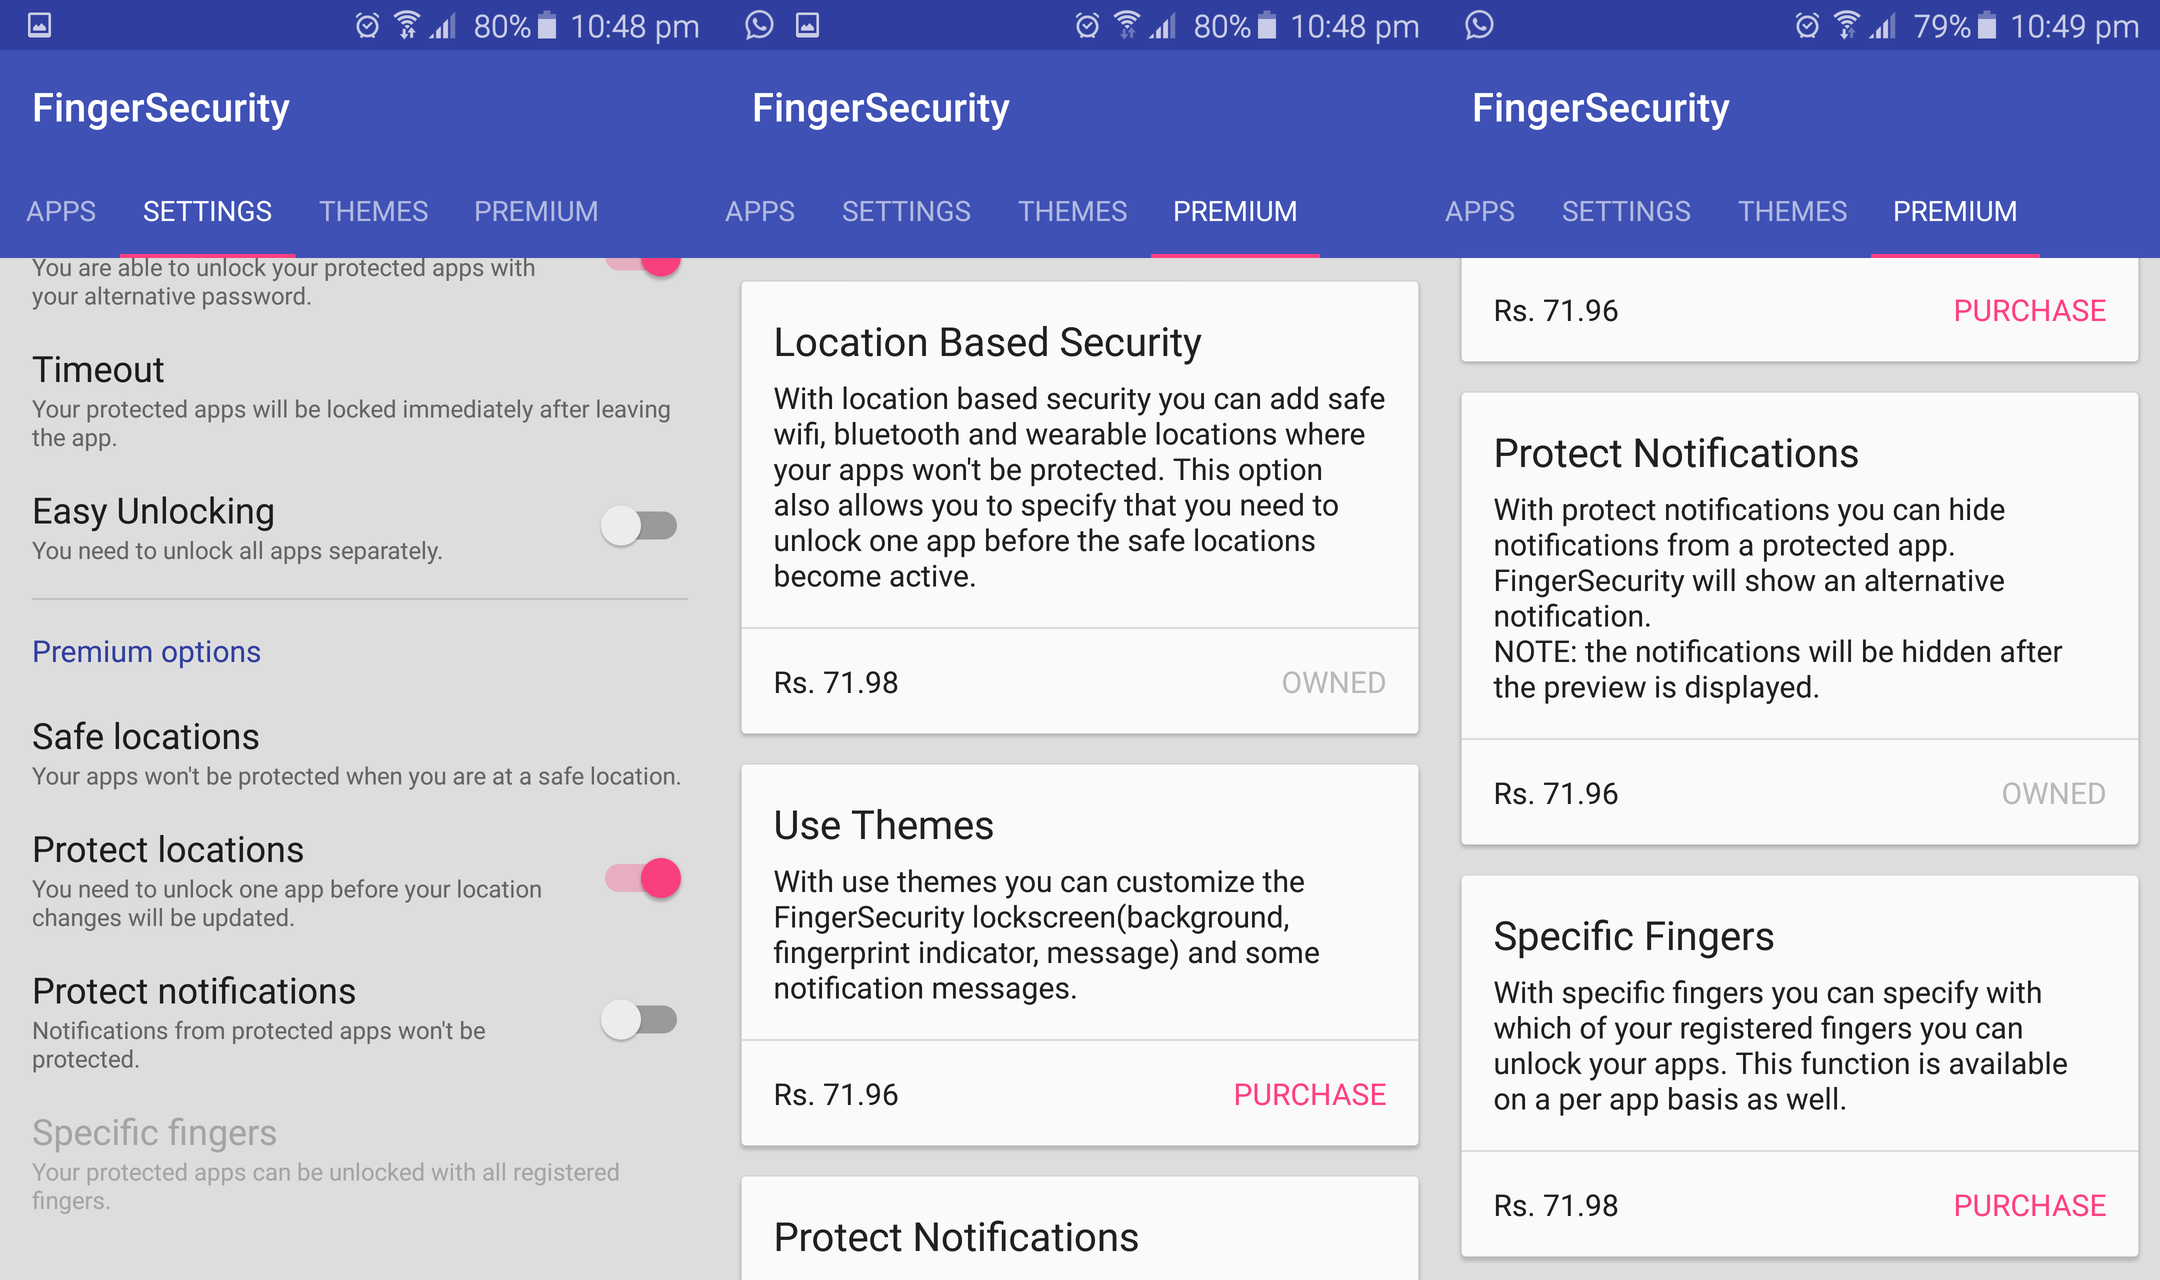 App Focus: FingerSecurity for protecting apps using your